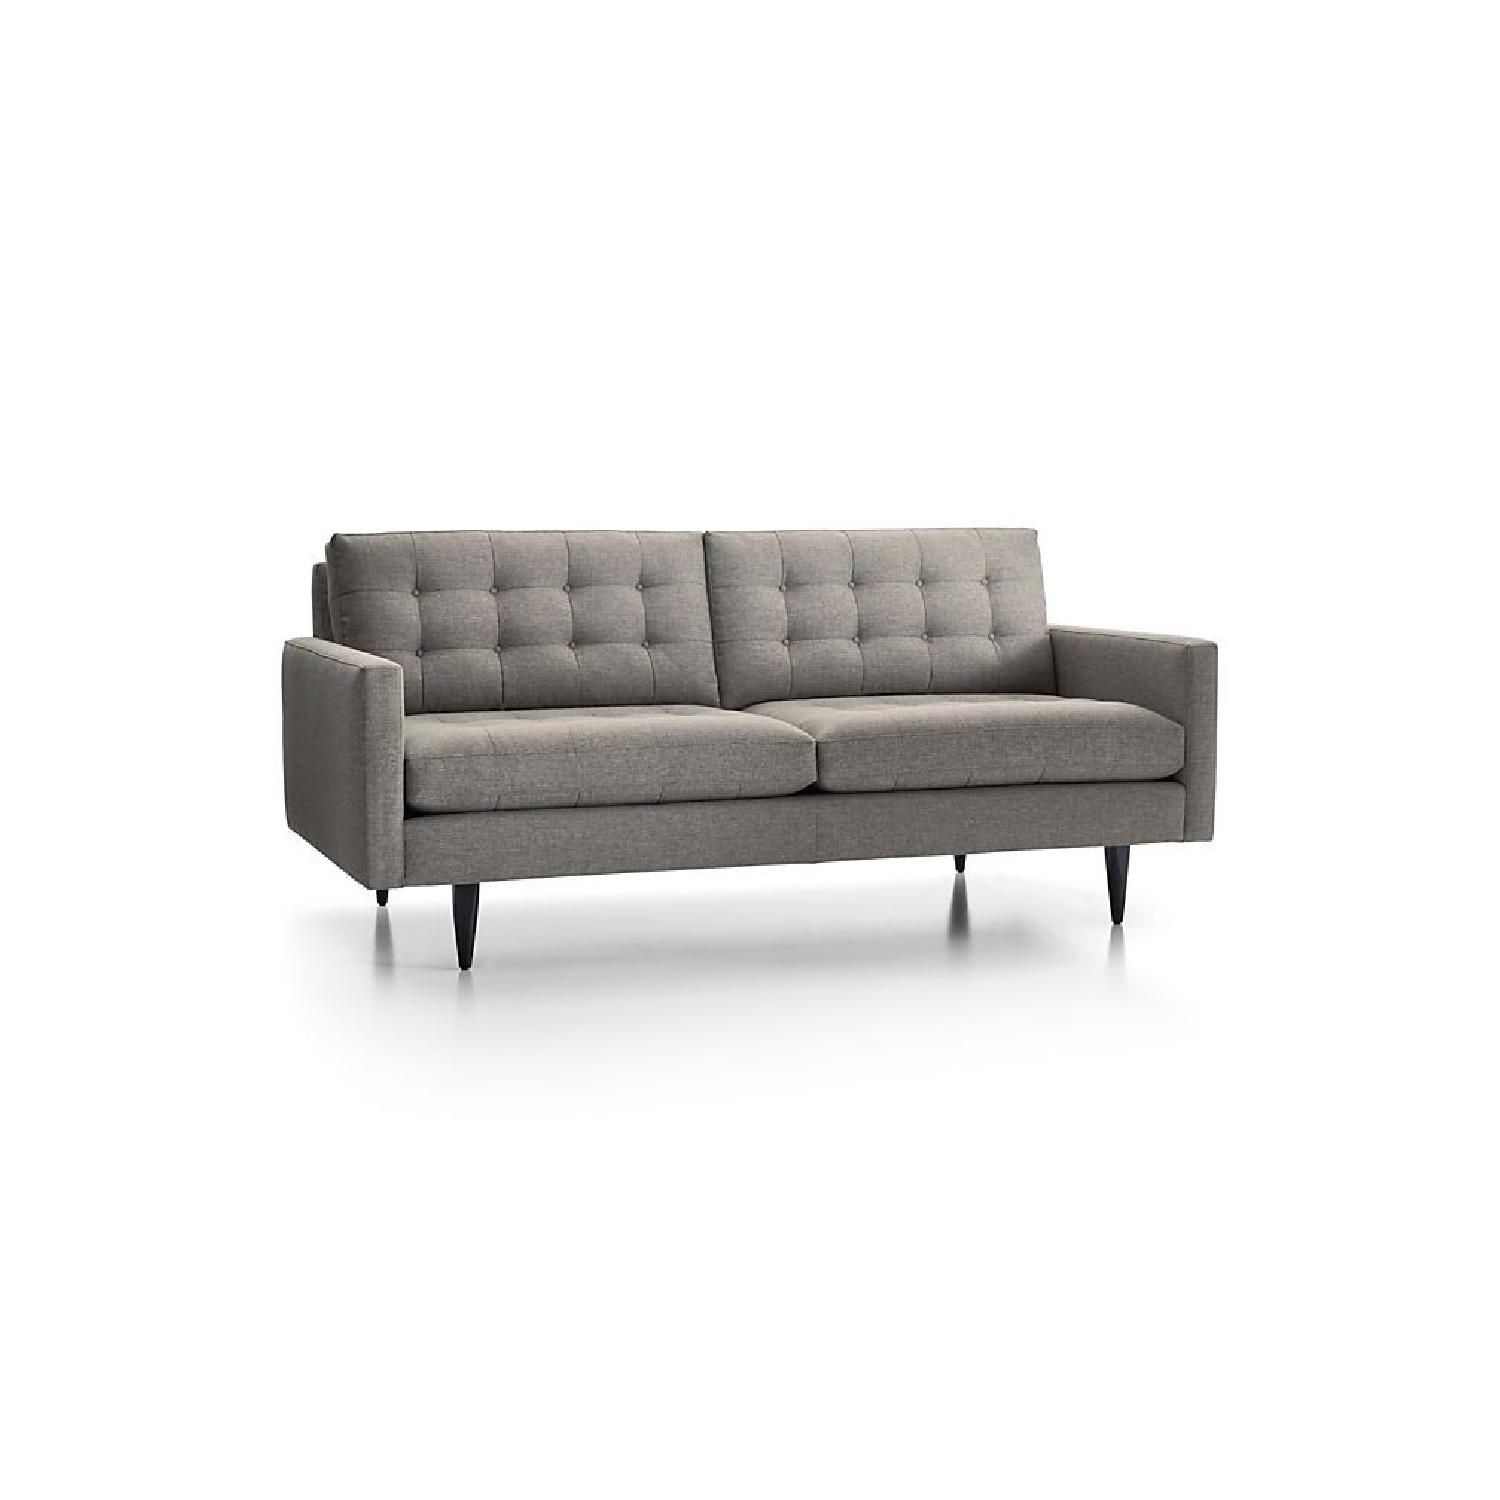 Peachy Crate Barrel Petrie Mid Century Sofa In Gray Aptdeco Pabps2019 Chair Design Images Pabps2019Com